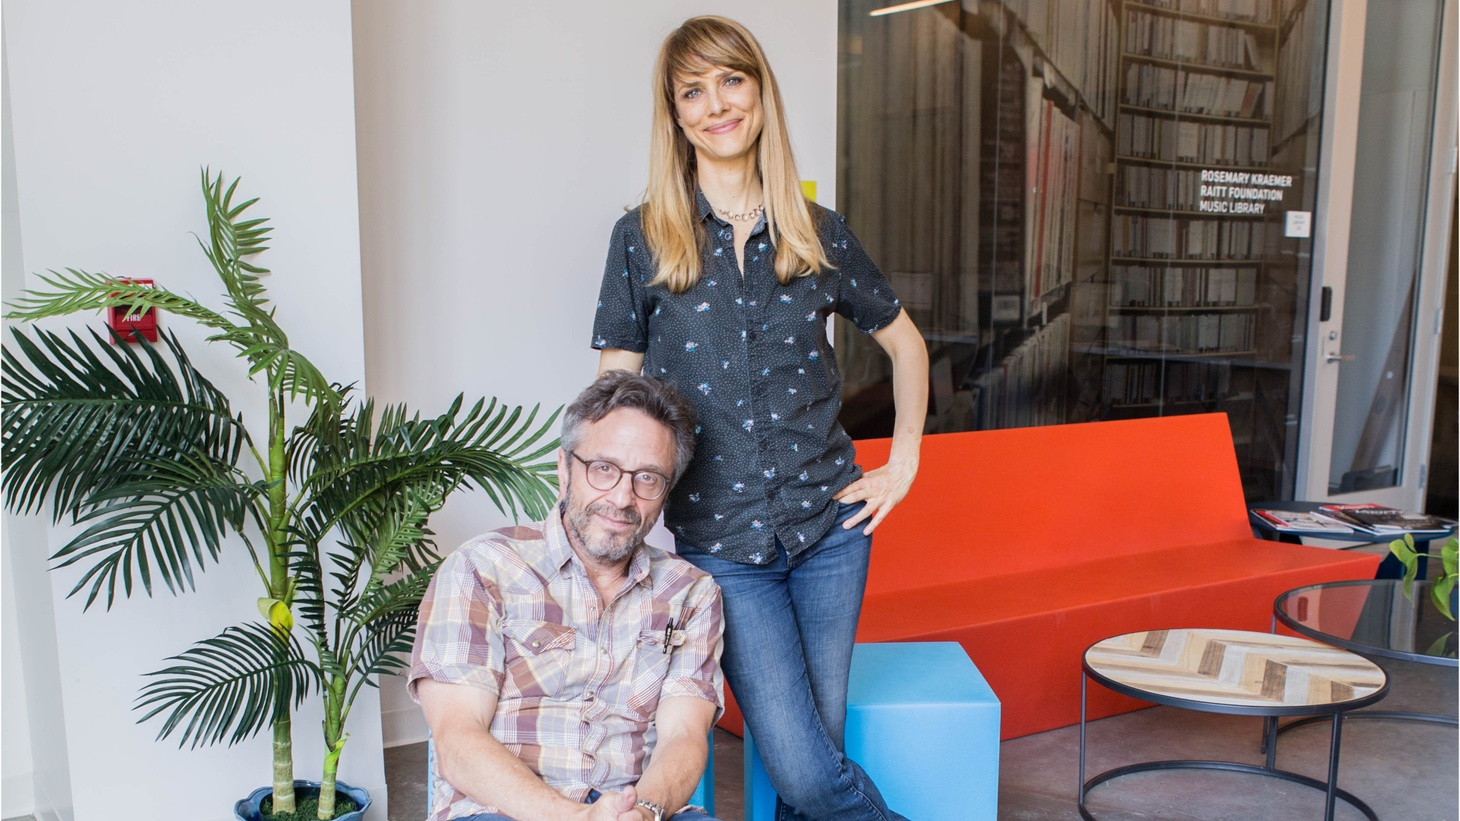 Lynn Shelton and Marc Maron at KCRW.